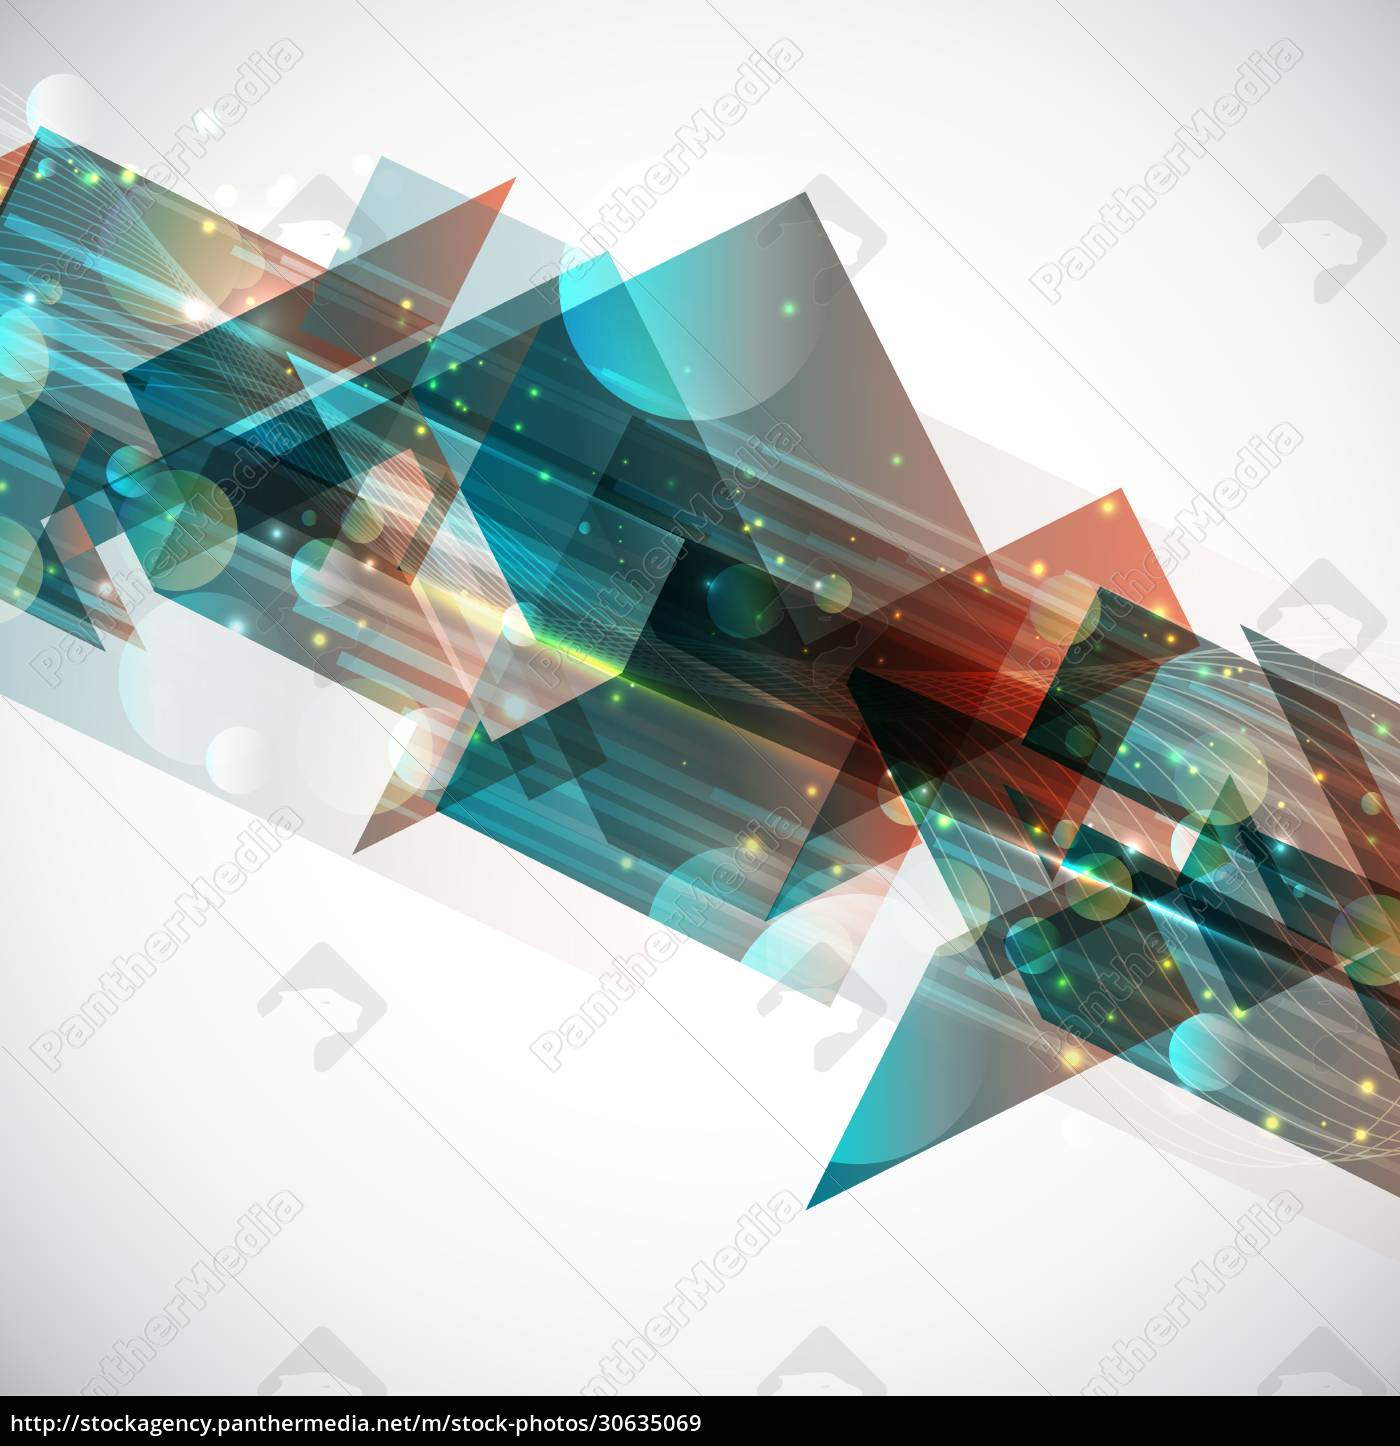 abstract, design, background - 30635069